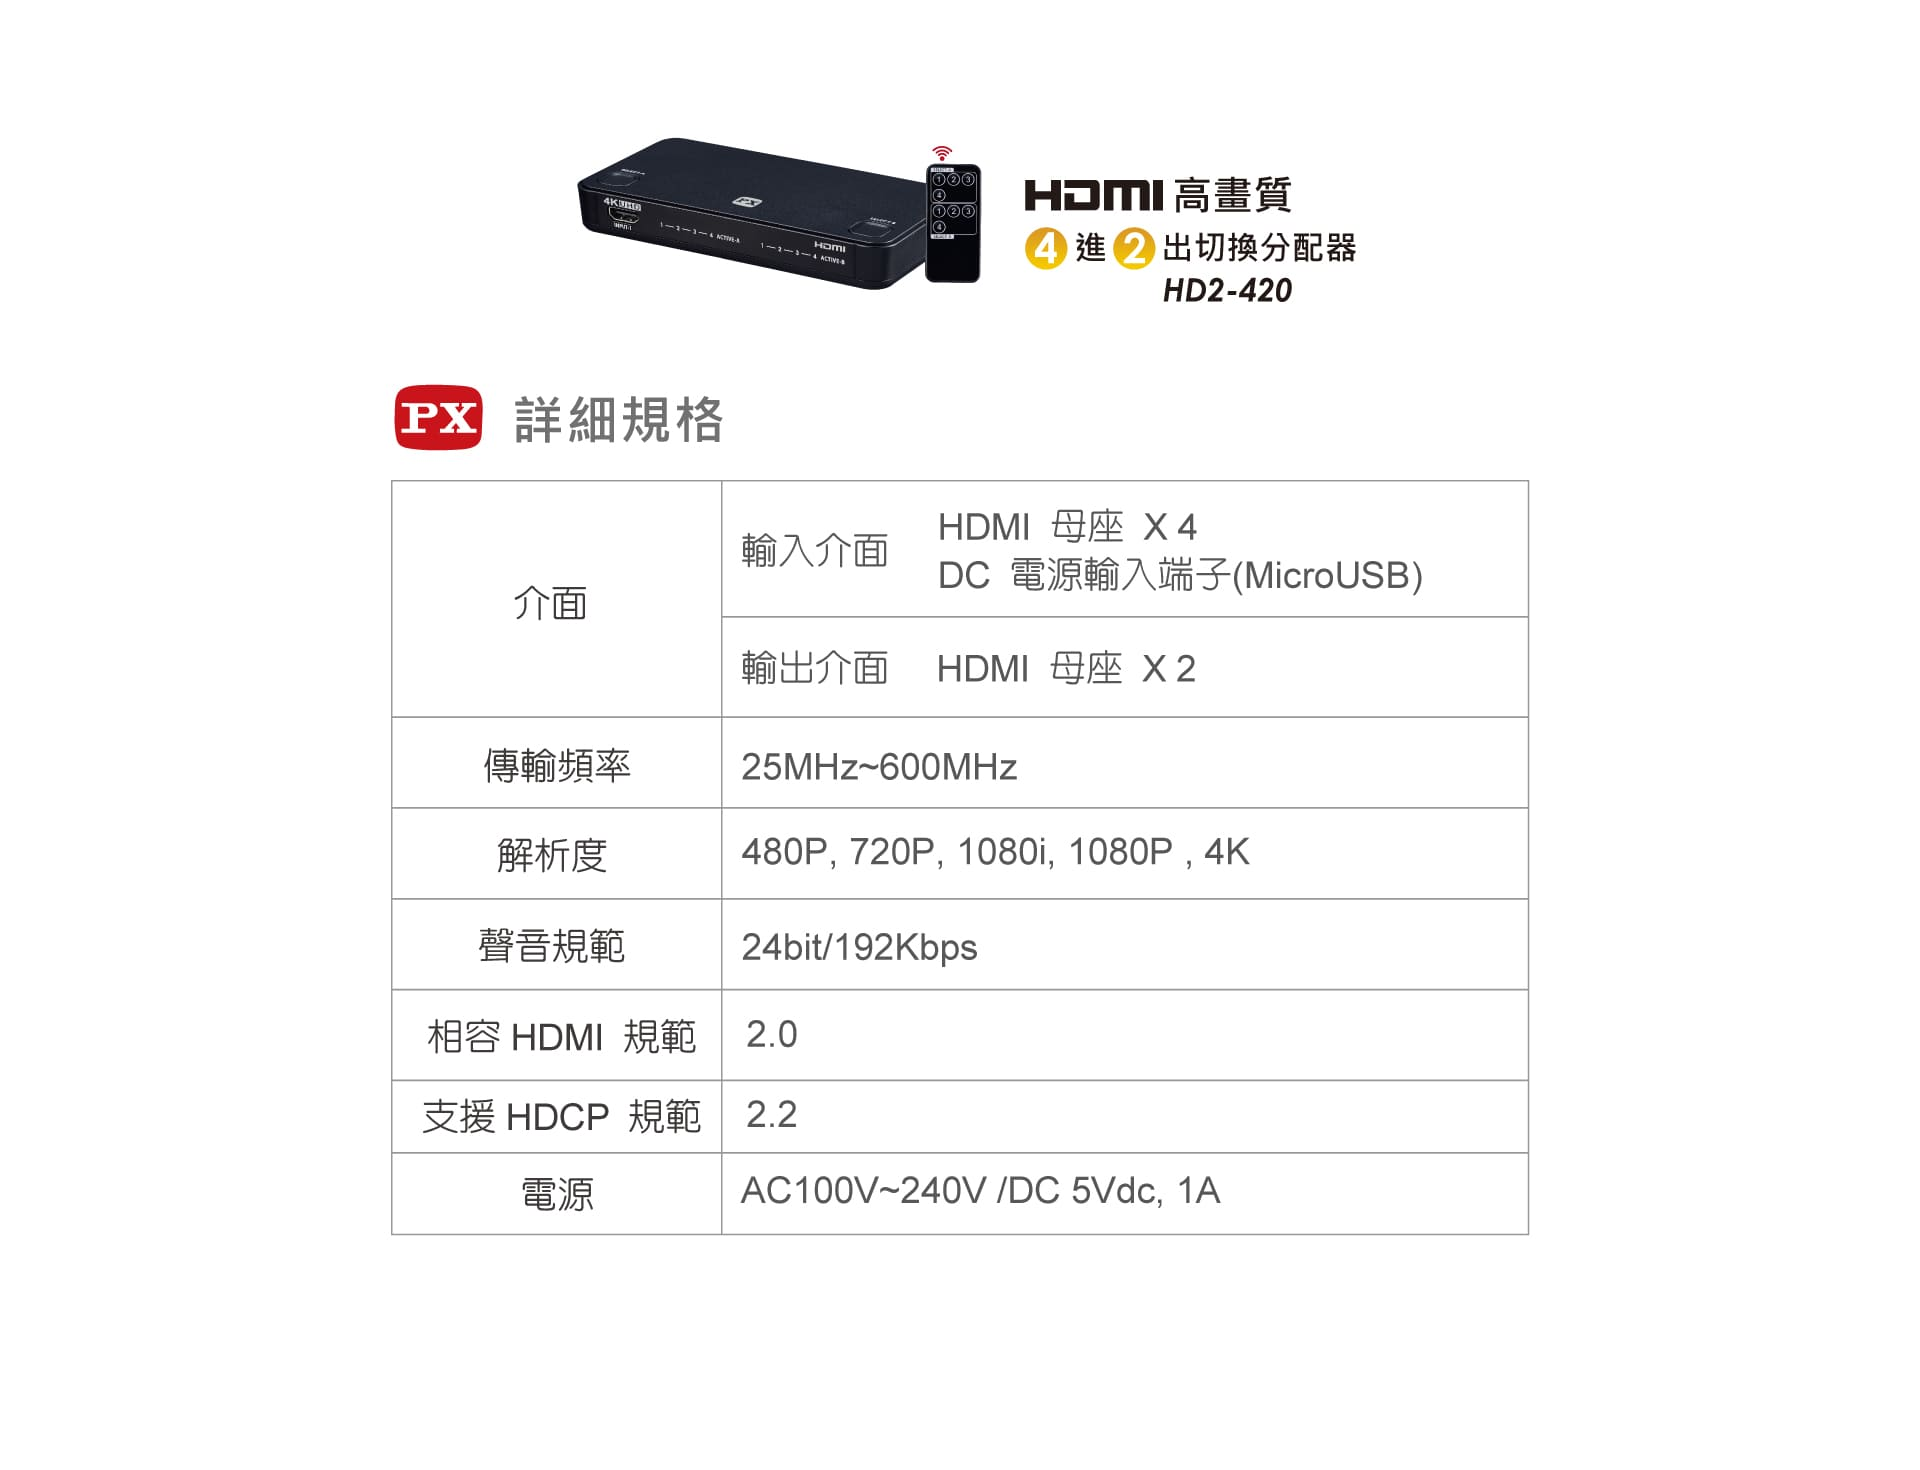 proimages/product/HDMI/HD2-420/HD2-420_08.jpg